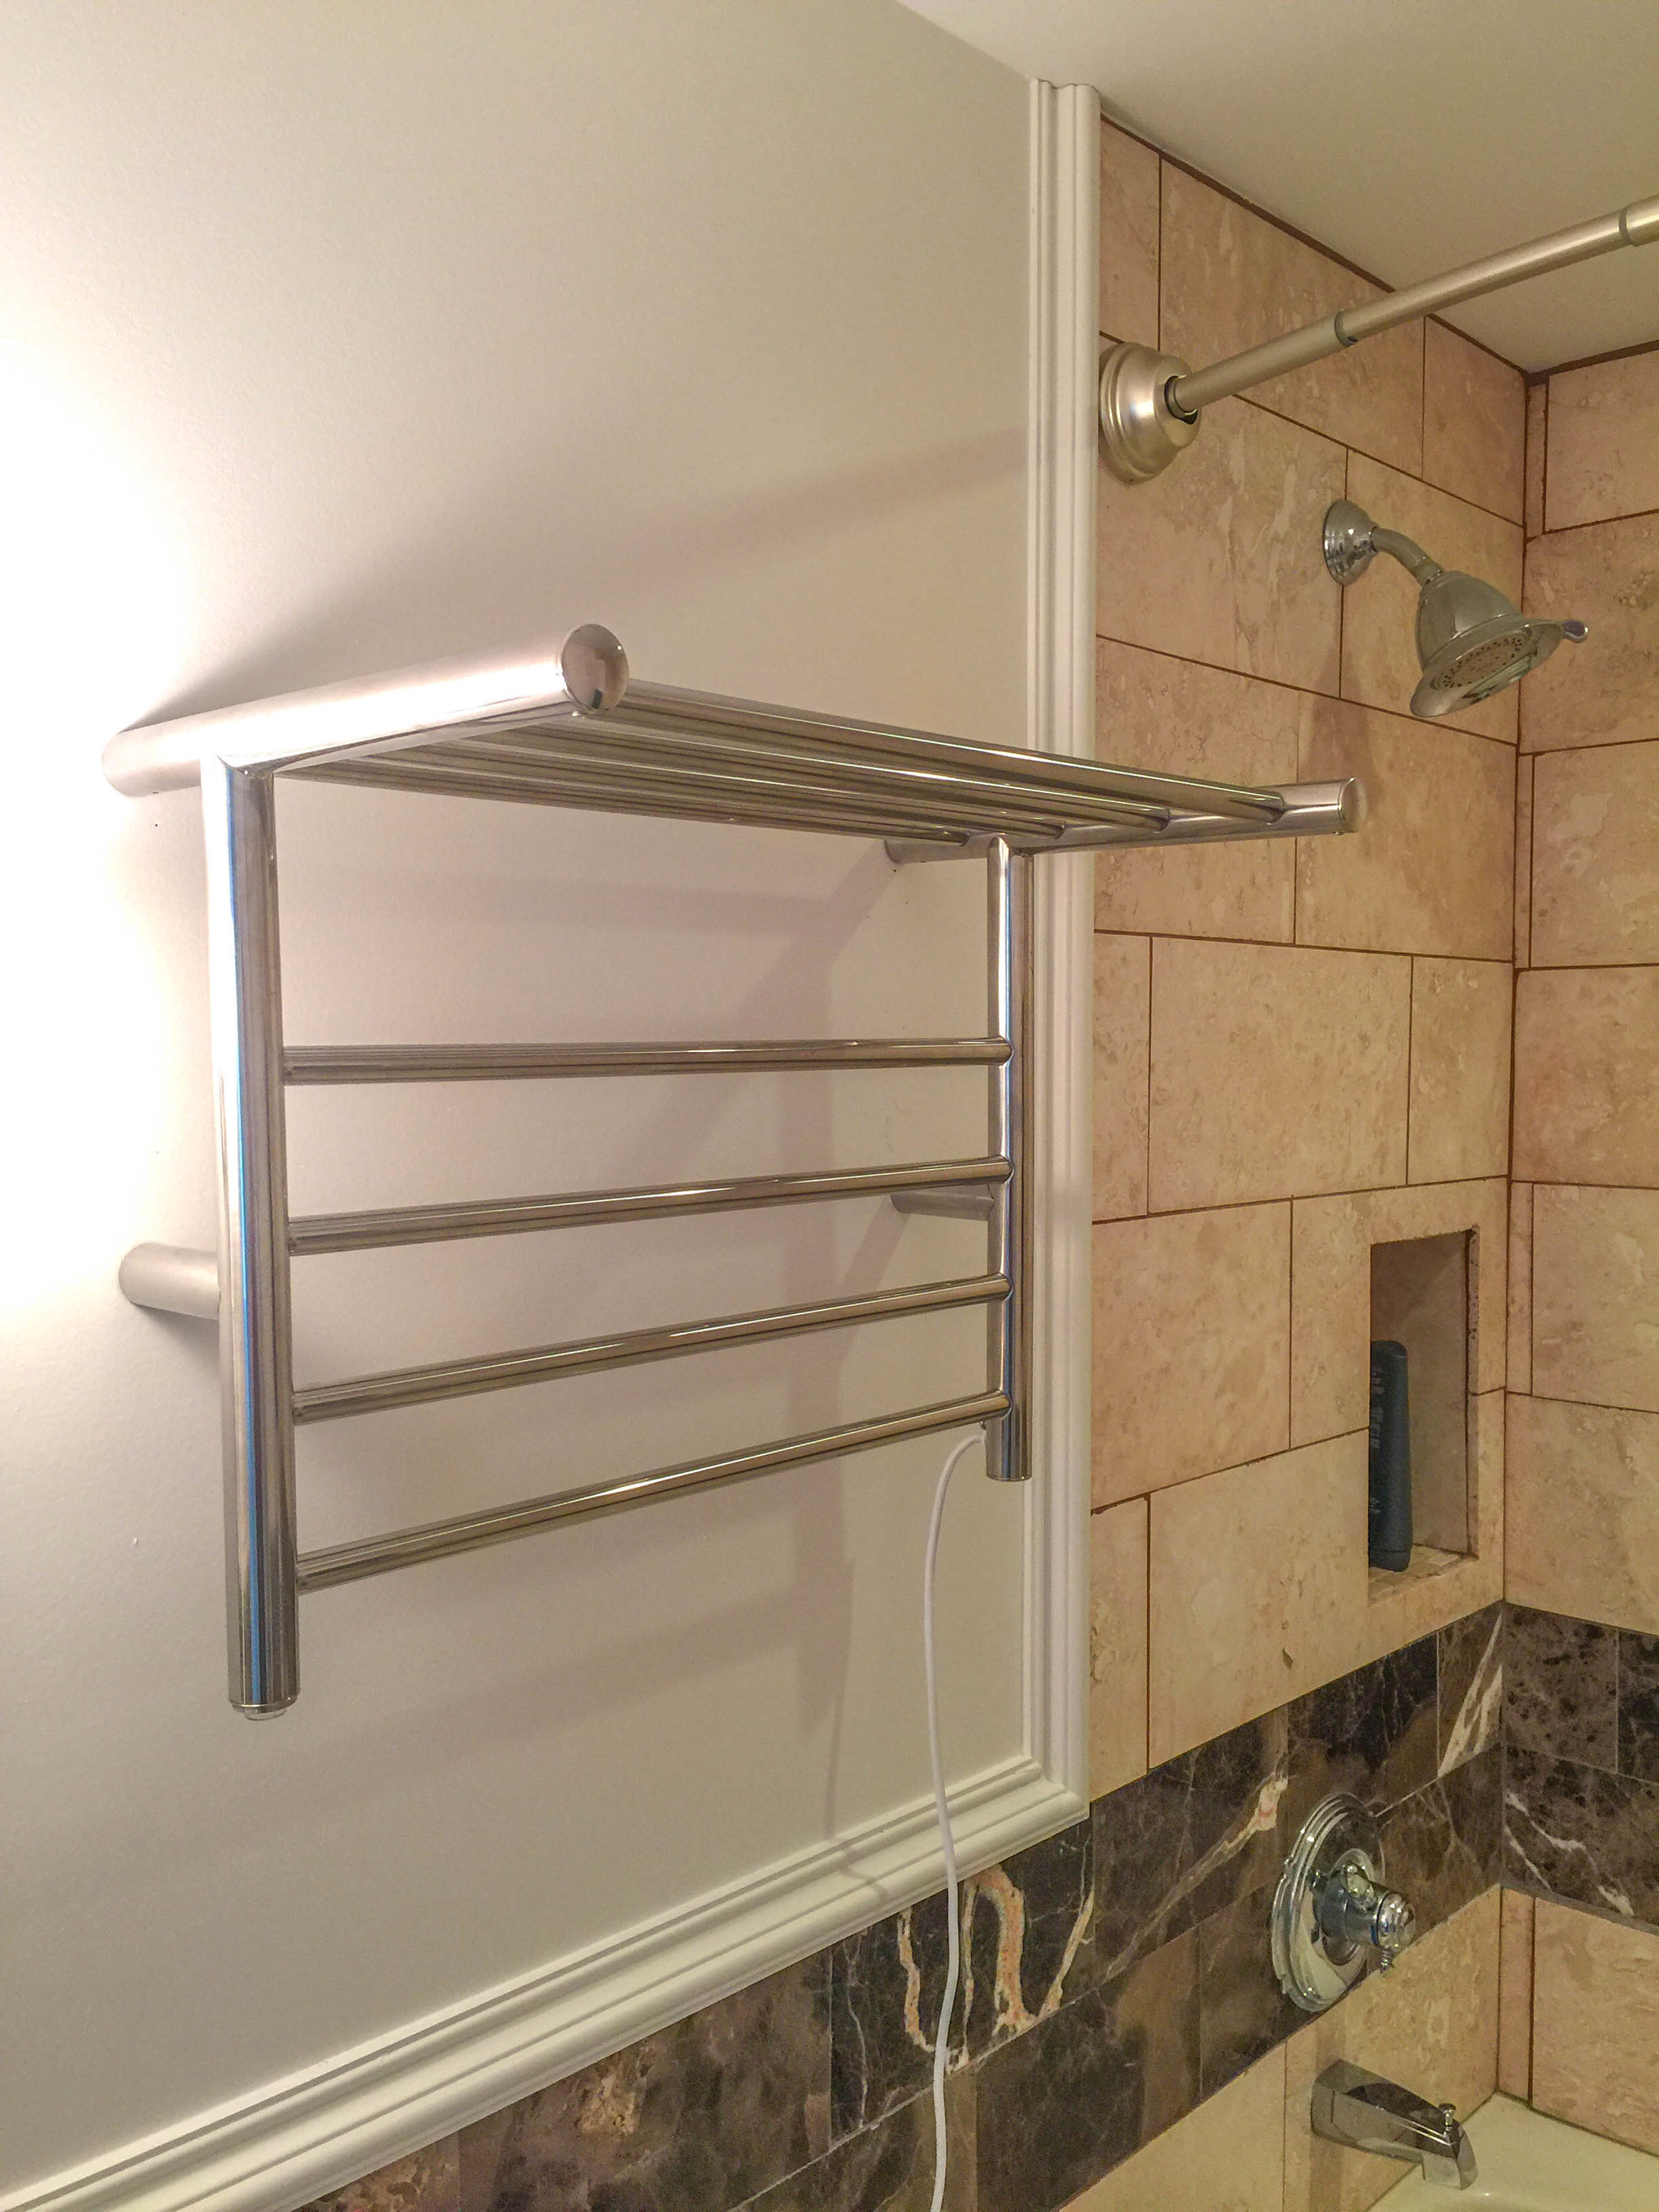 Hotel Collection Towel Bar Luxury Heated Towel Racks Set To Warm Things Up In Hotel